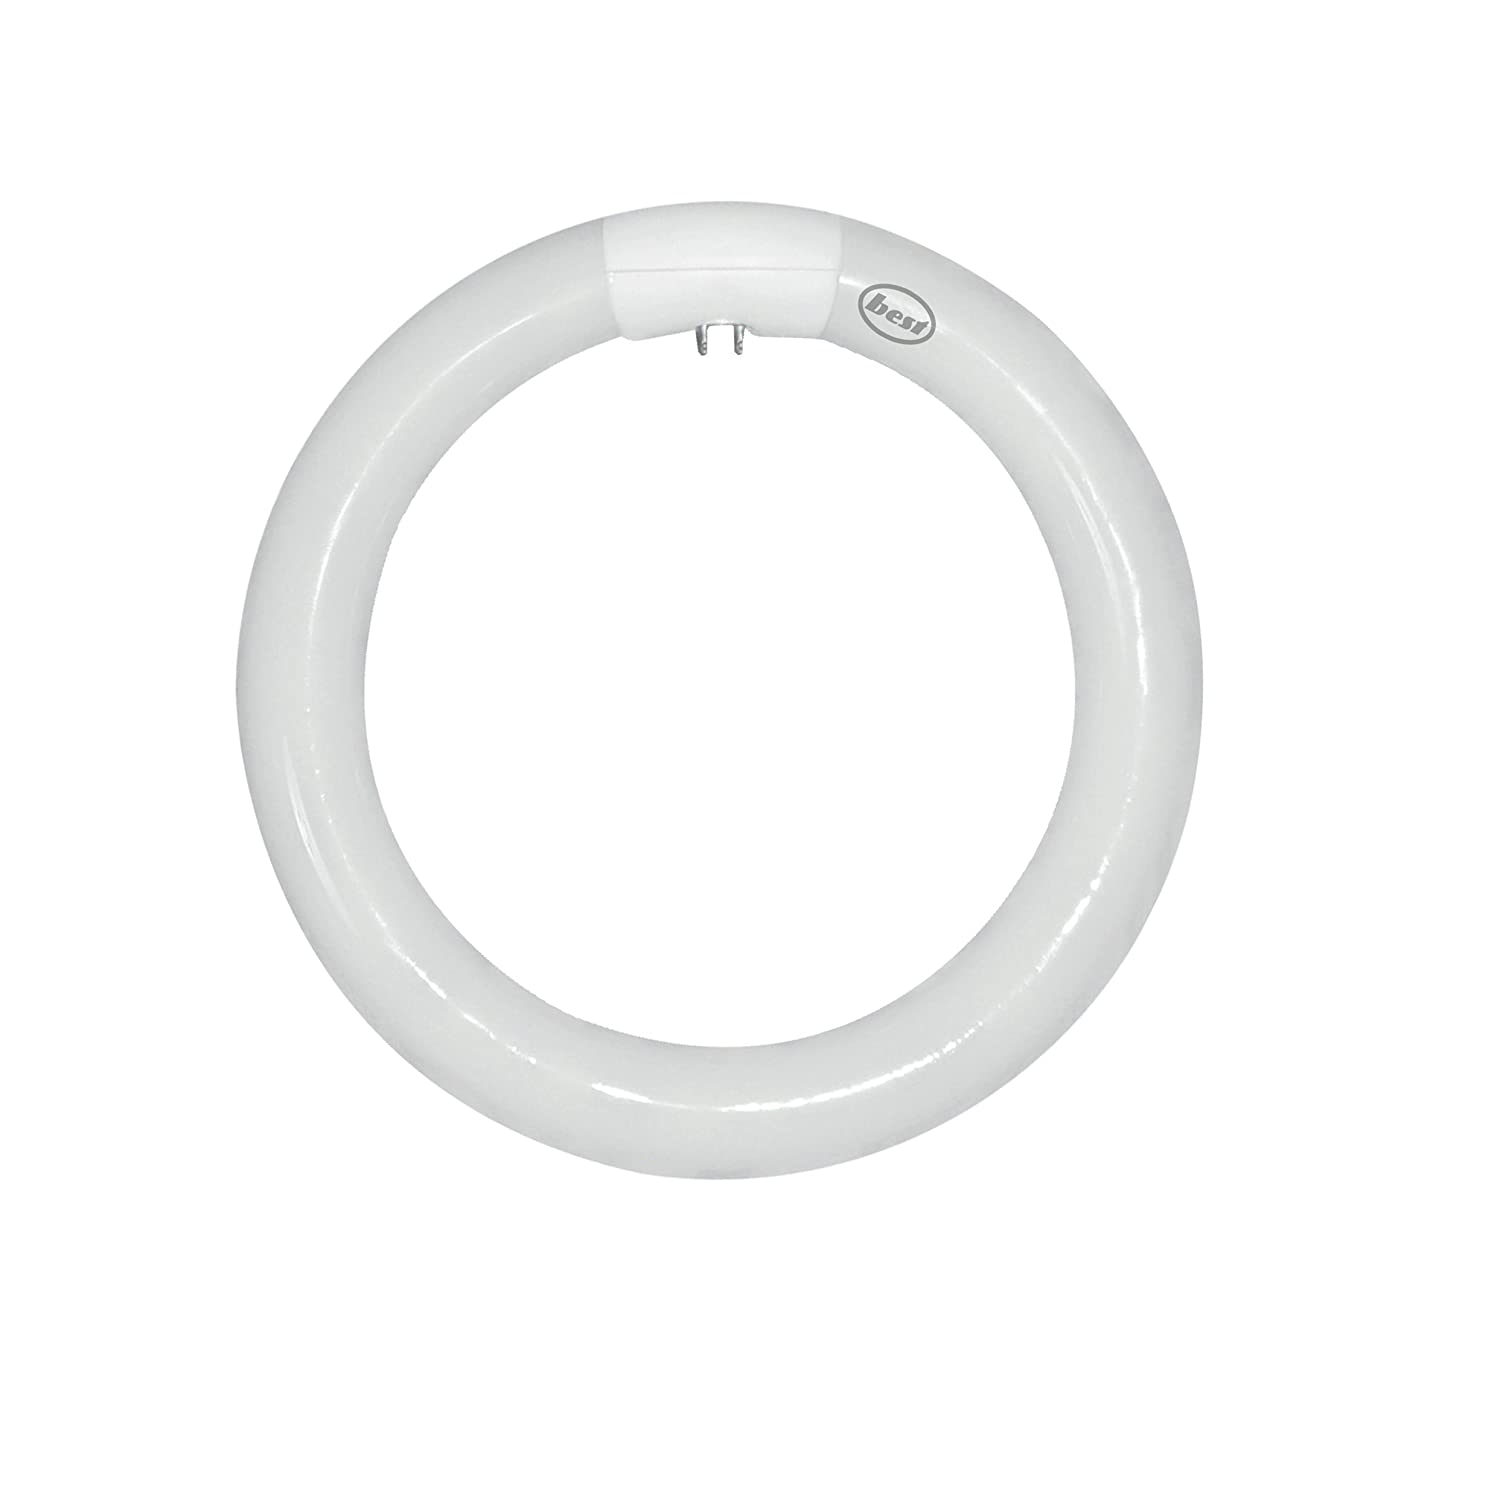 Bulk Hardware - Tubo fluorescente circular (T9CL, 40 W, 4 pines, 395 mm) Bulk Hardware Ltd BH00666